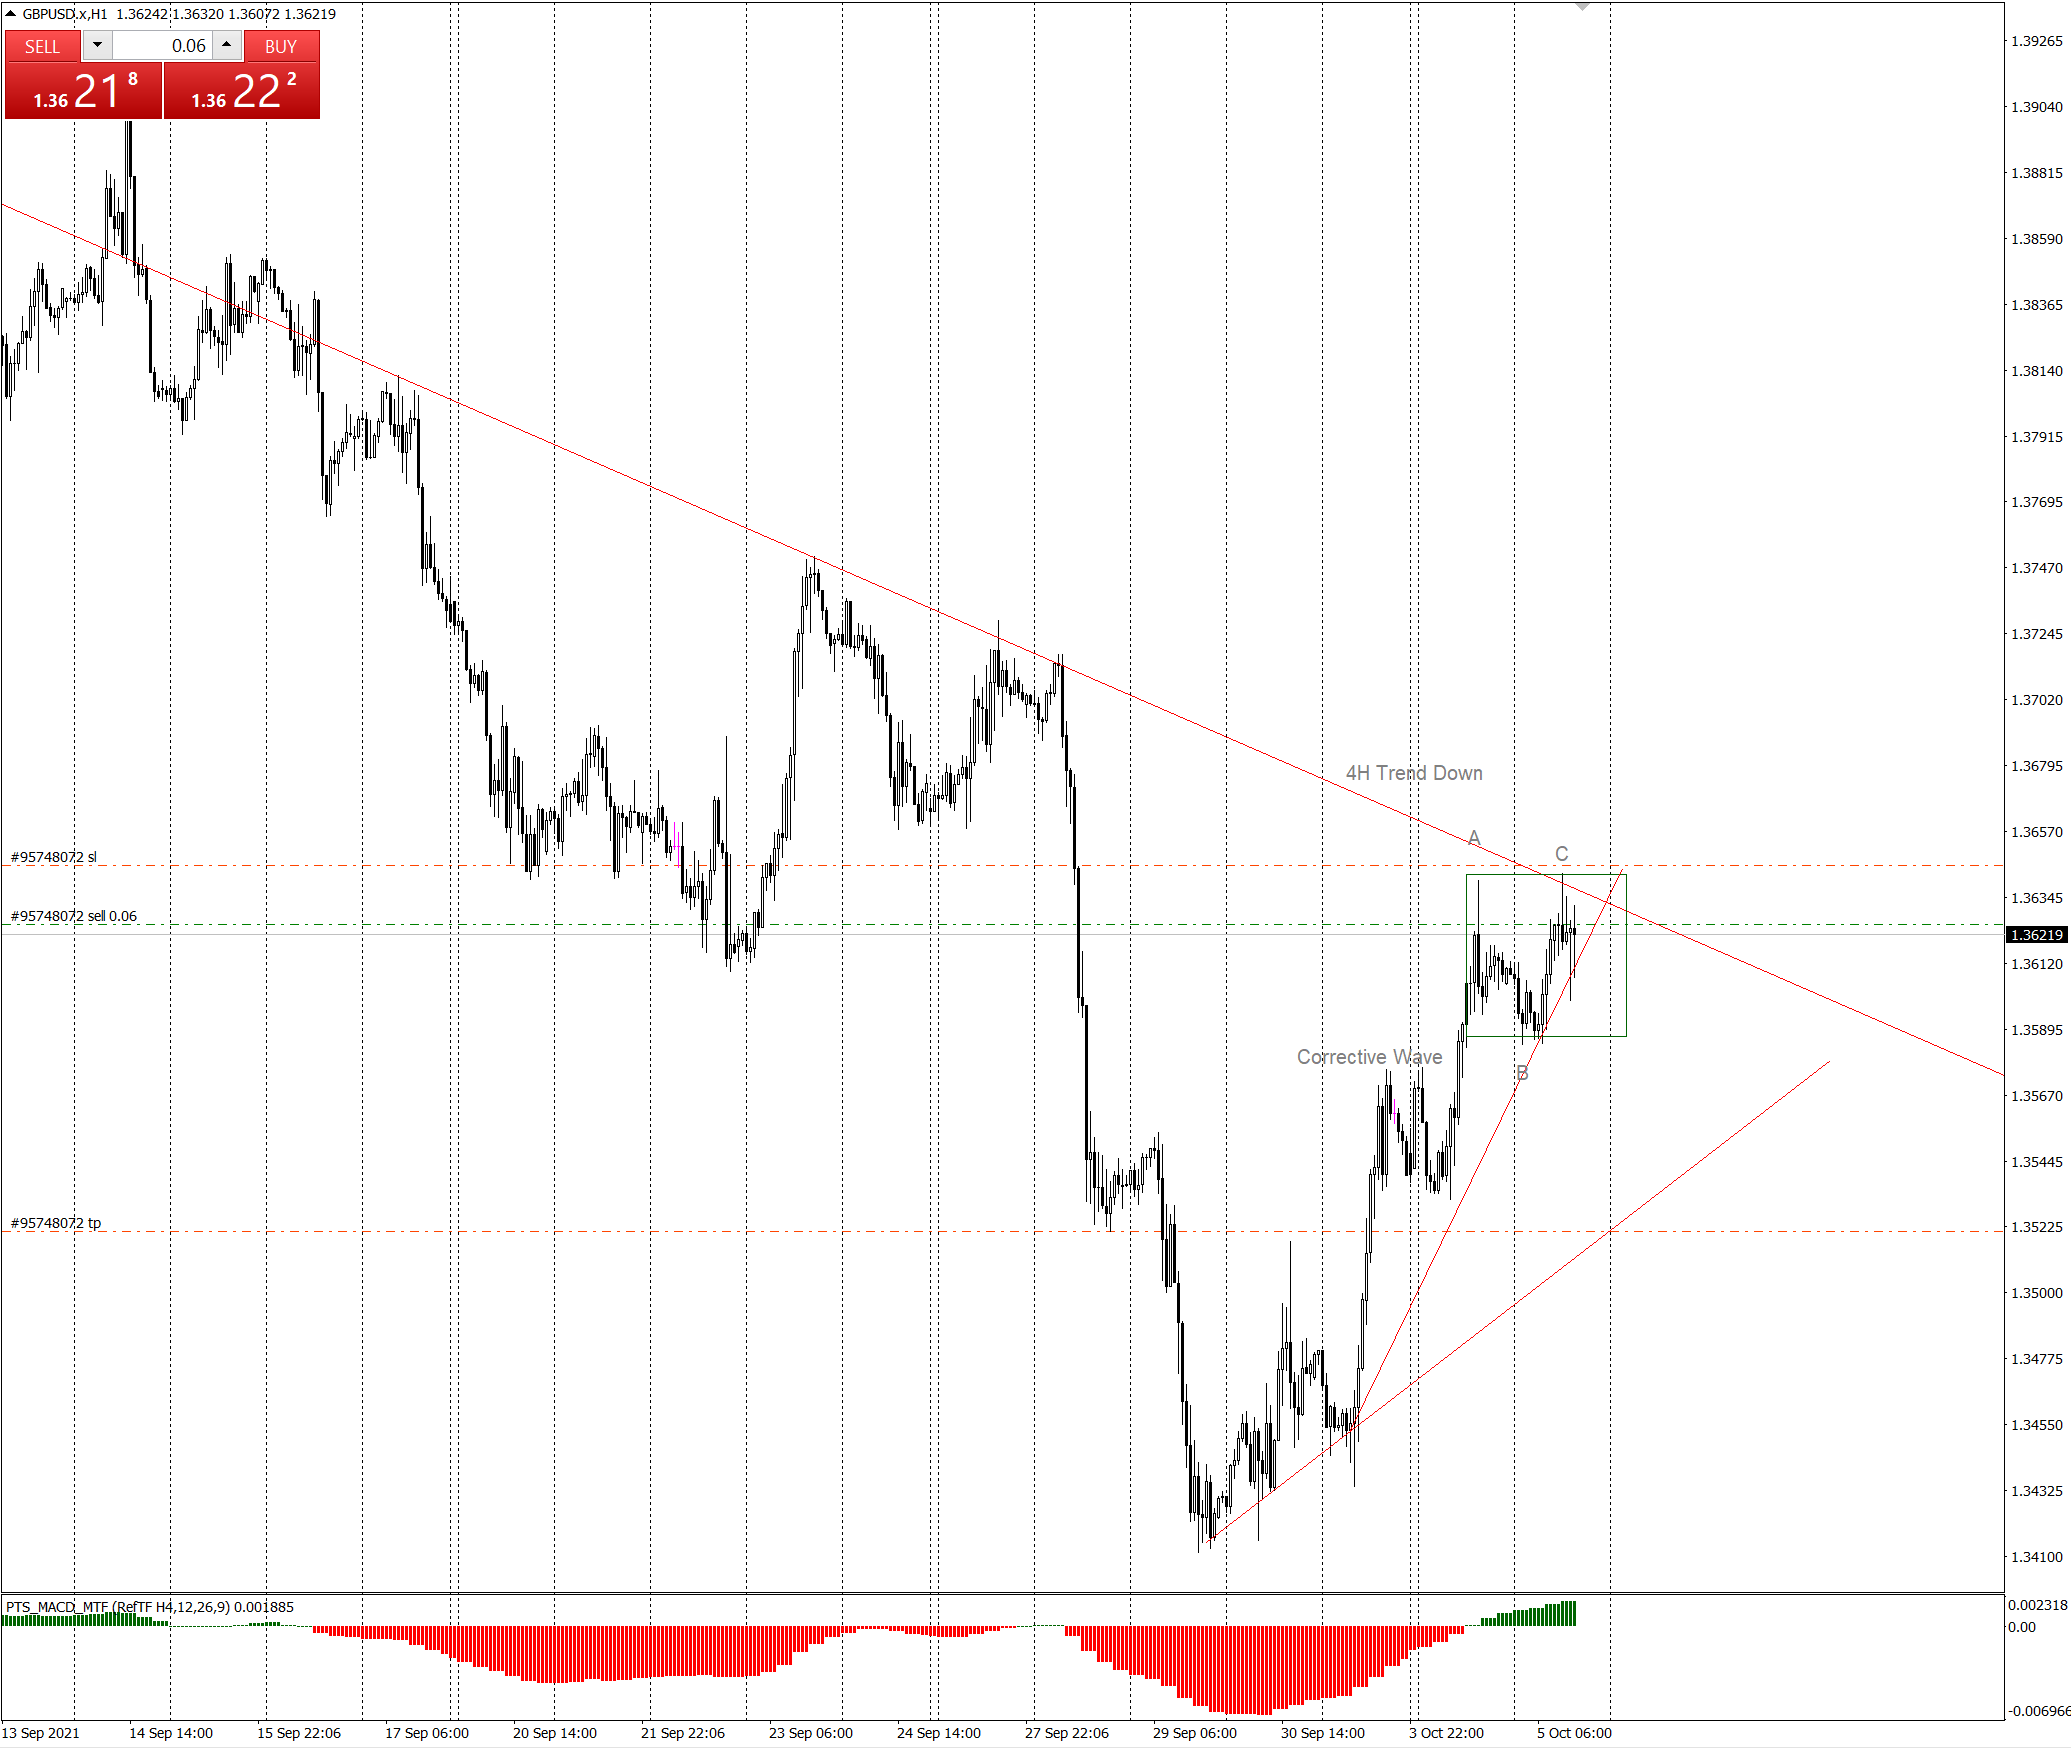 GBP/USD H4 Corrective Wave with Trend